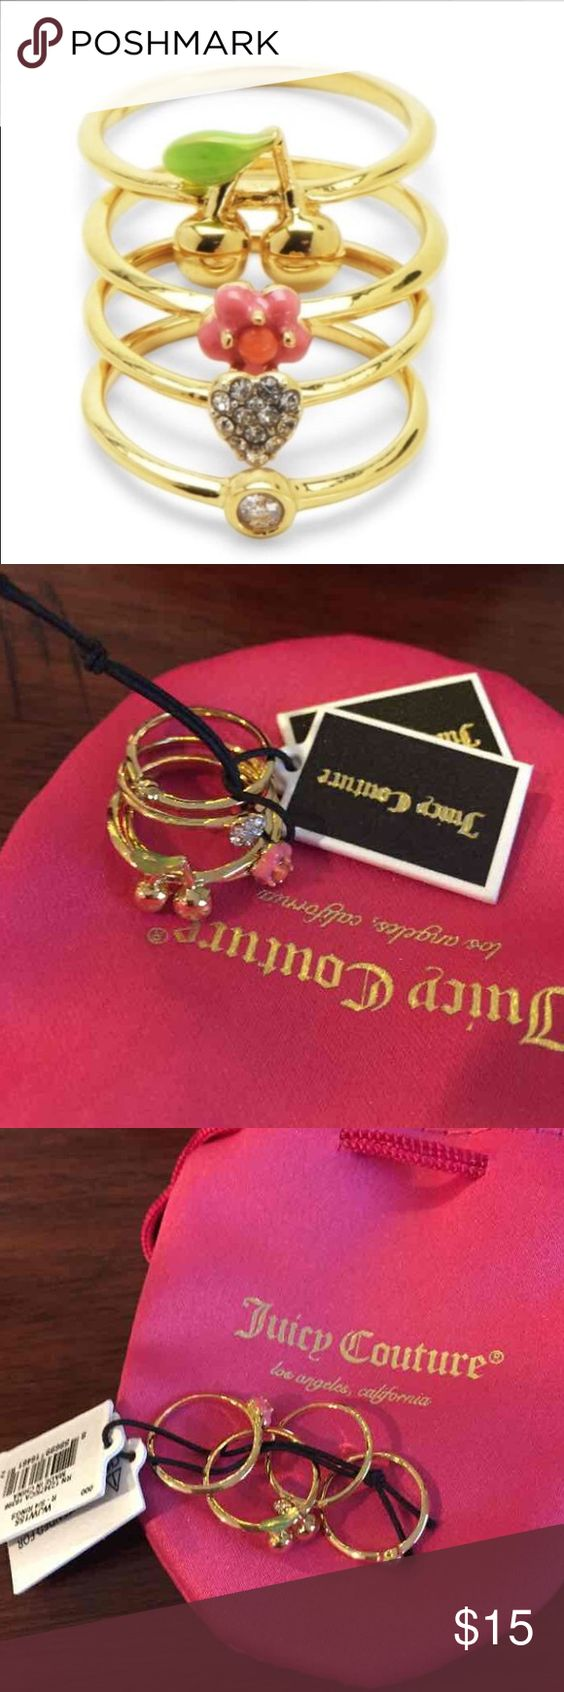 NWT $58 Juicy Couture Midi Ring Set ⚡️PRICE ABSOLUTELY FIRM⚡️ Designed to be worn on middle of finger. 4 rings total. New with tags. Bundle and save! Juicy Couture Jewelry Rings